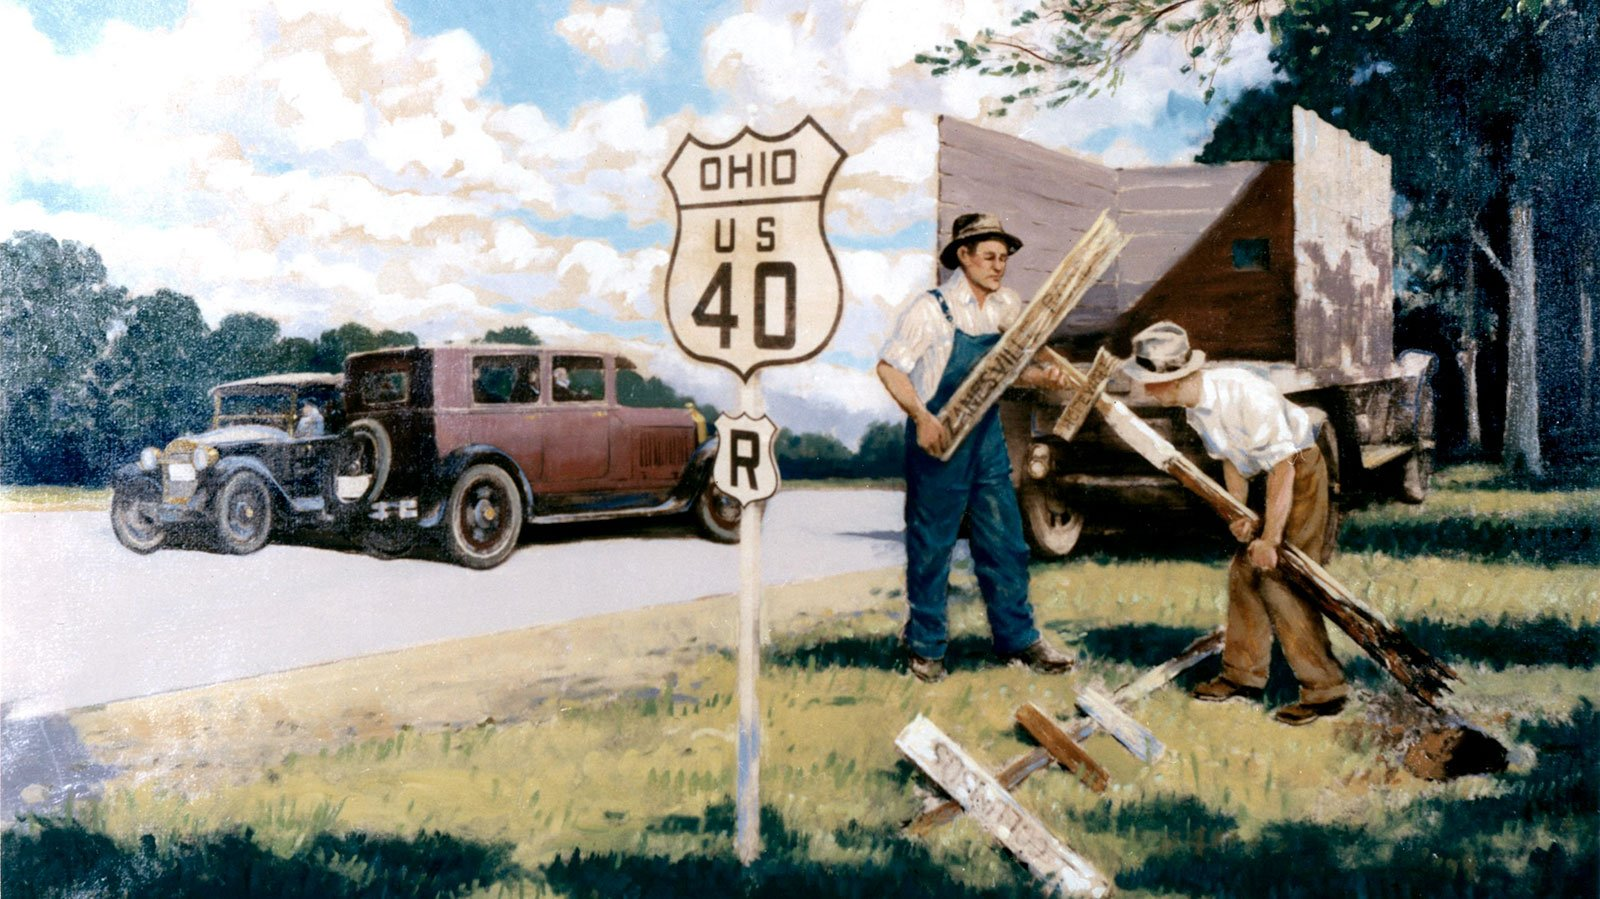 1925 – Adoption of Uniform Signs painting